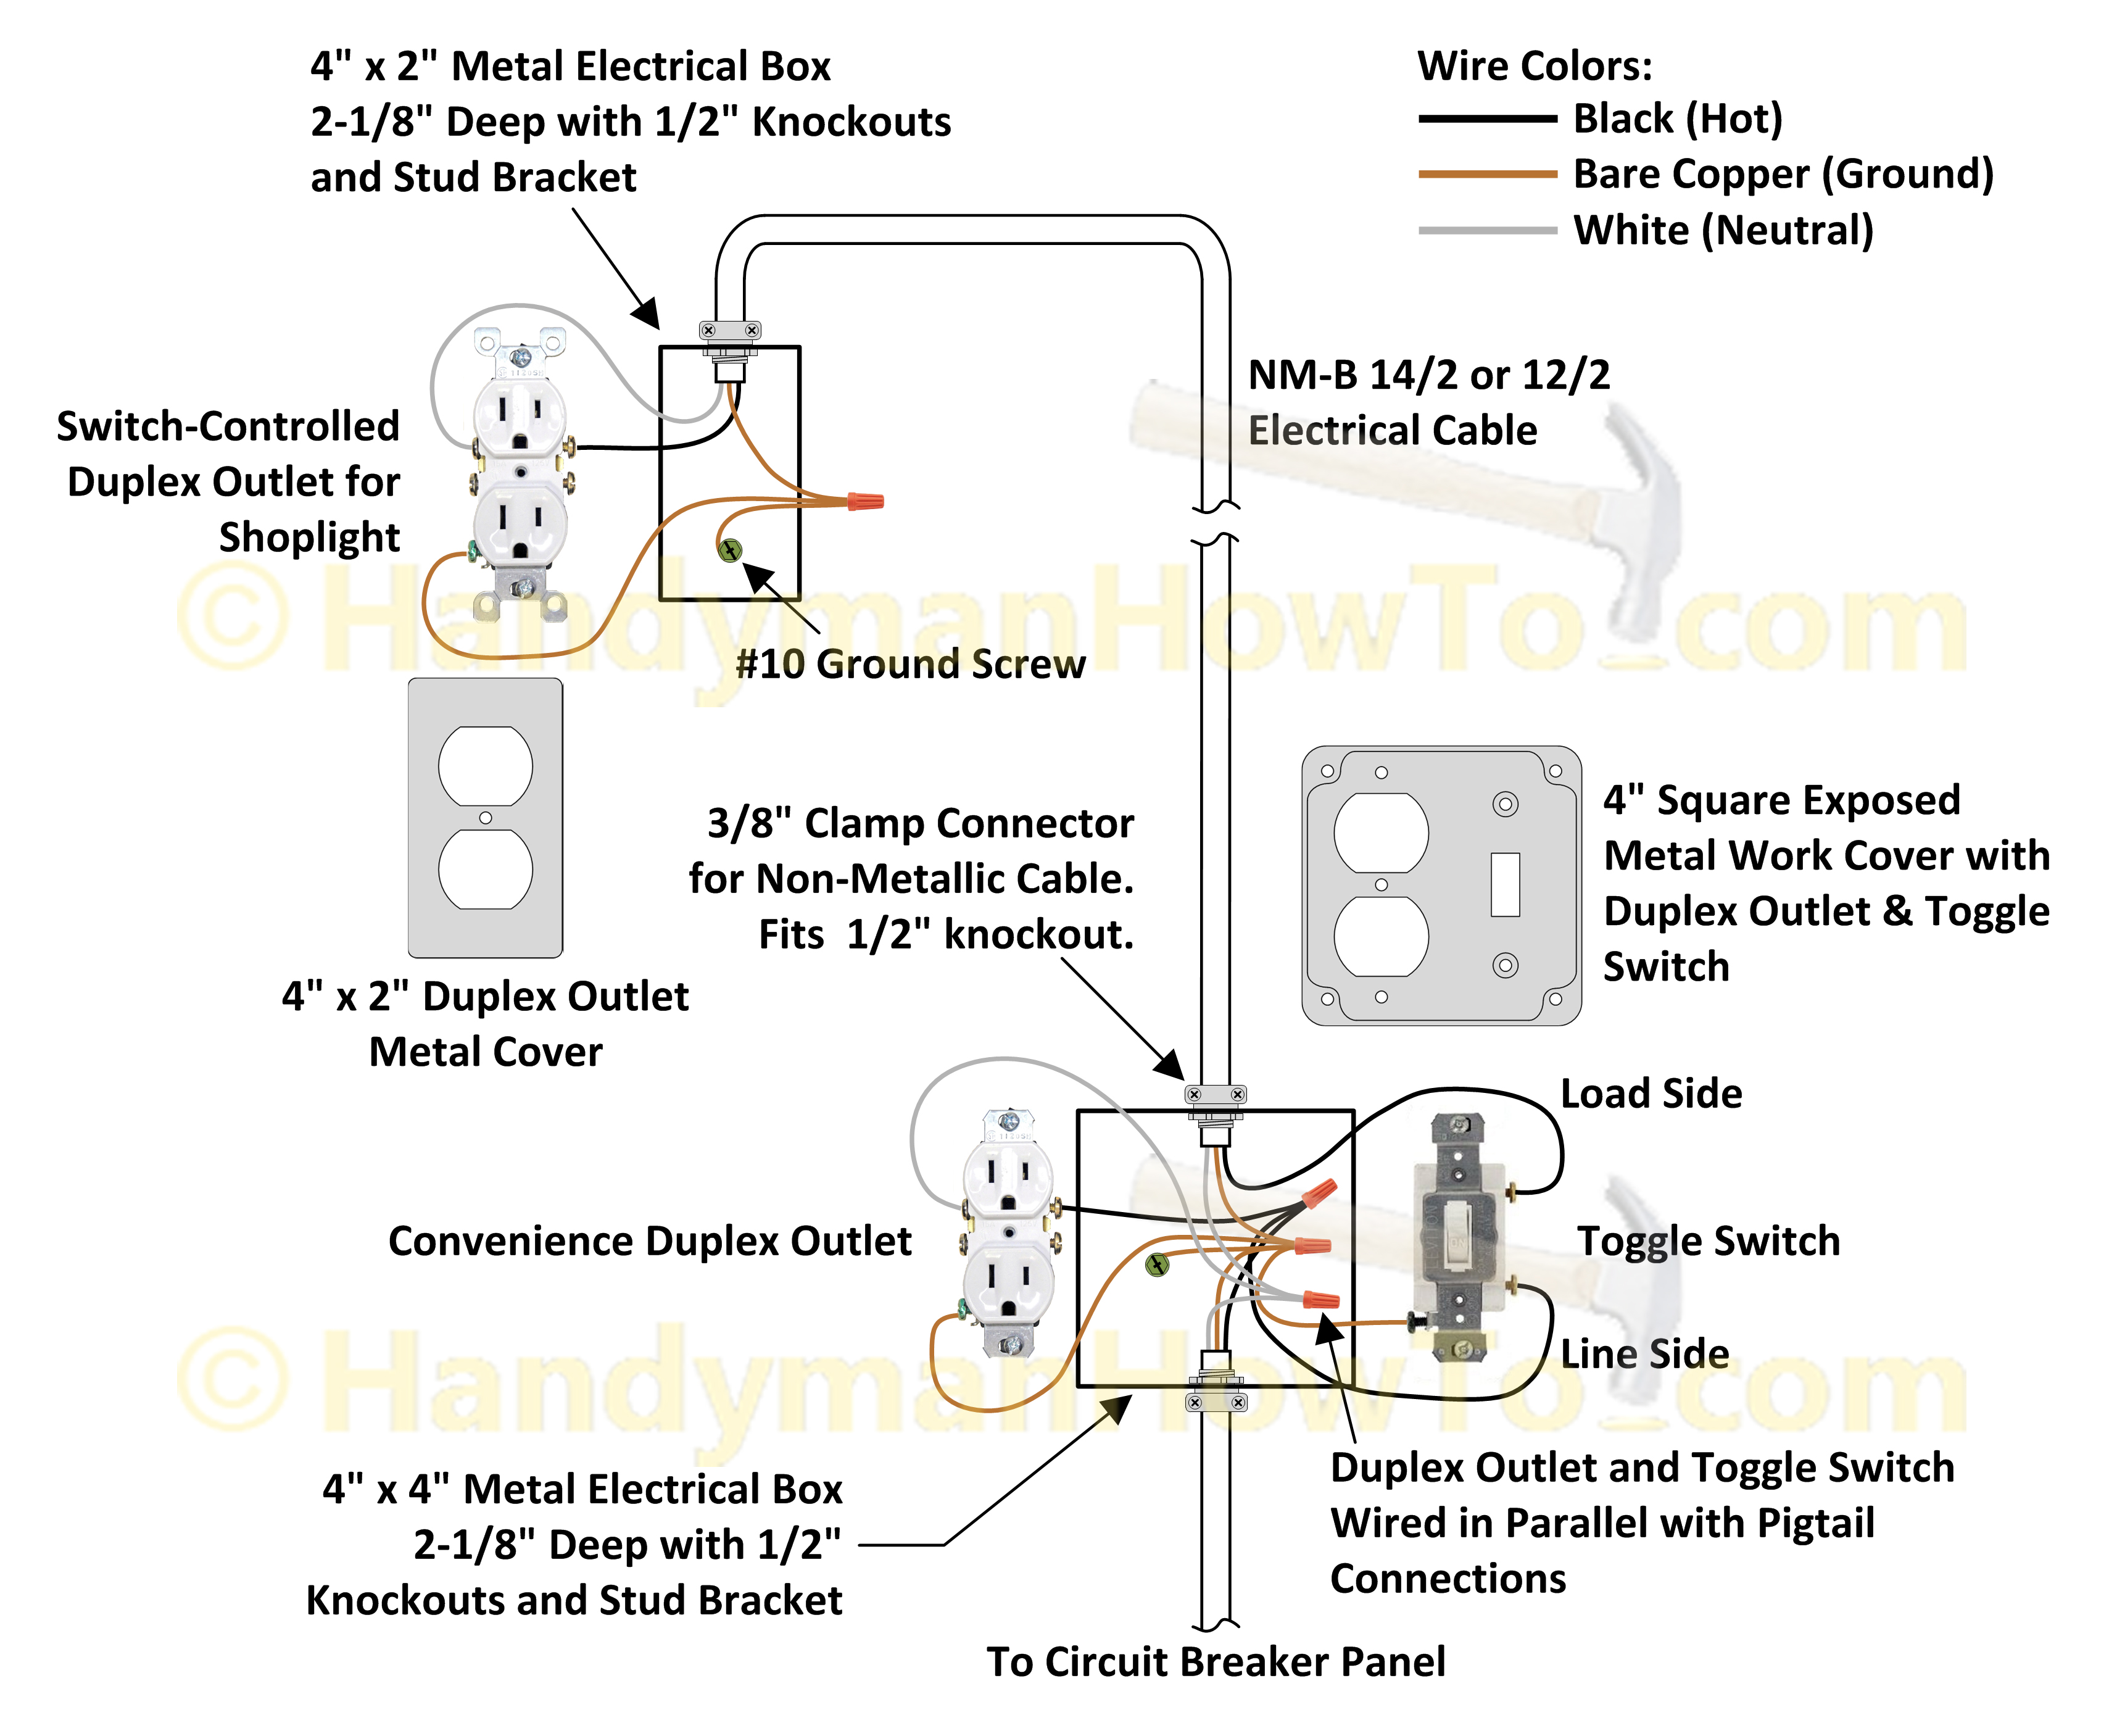 wiring diagram 250v outlet wiring image wiring diagram wiring 250v receptacle kubota generator wiring diagrams gfci on wiring diagram 250v outlet